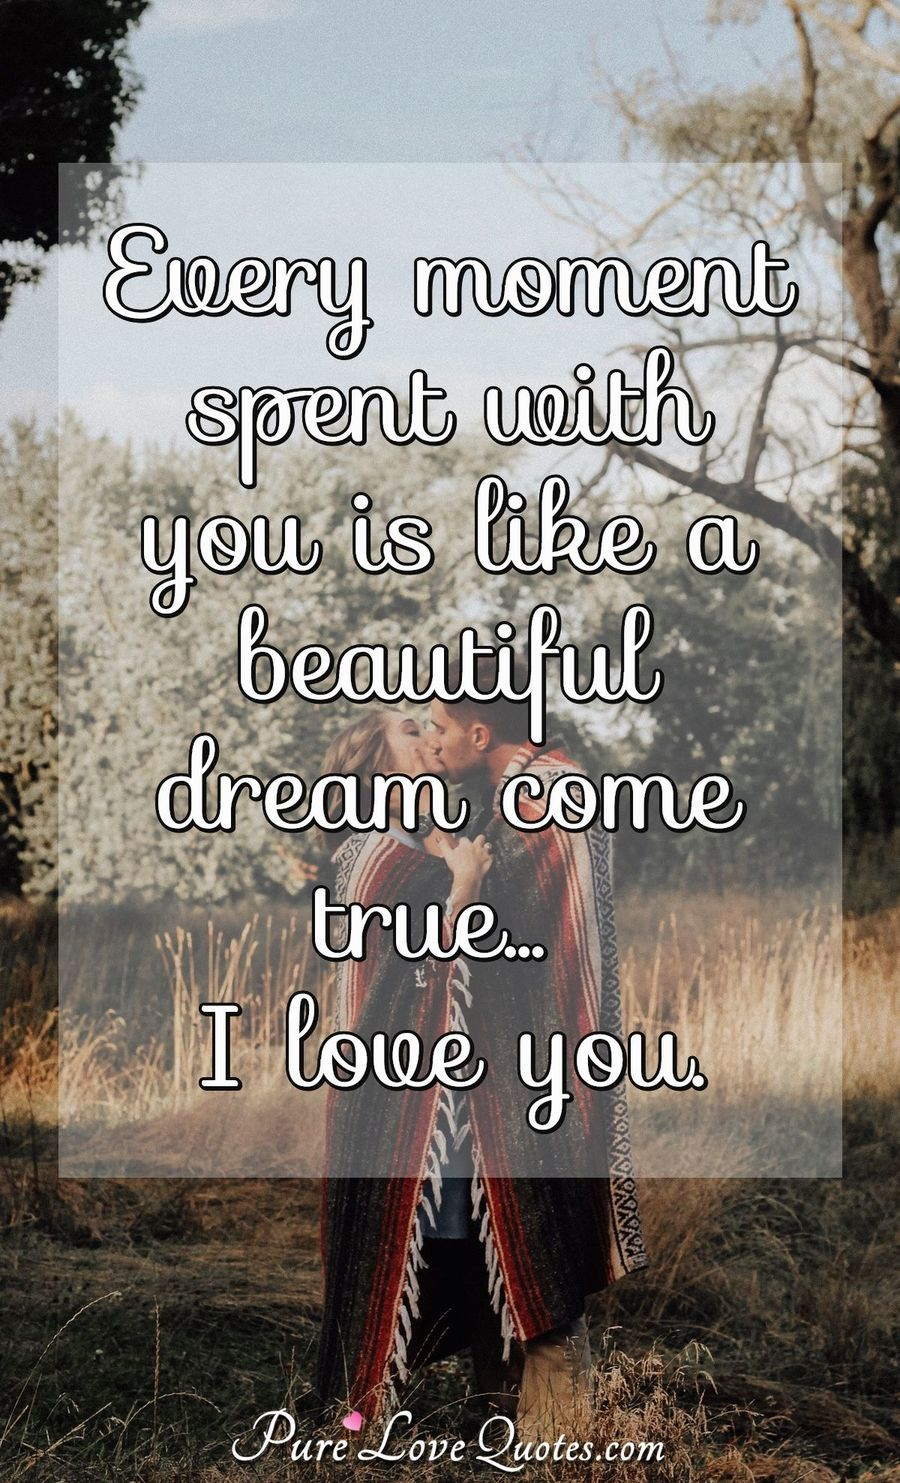 Love Quotes From Purelovequotes Com Love Quotes Beautiful Dream